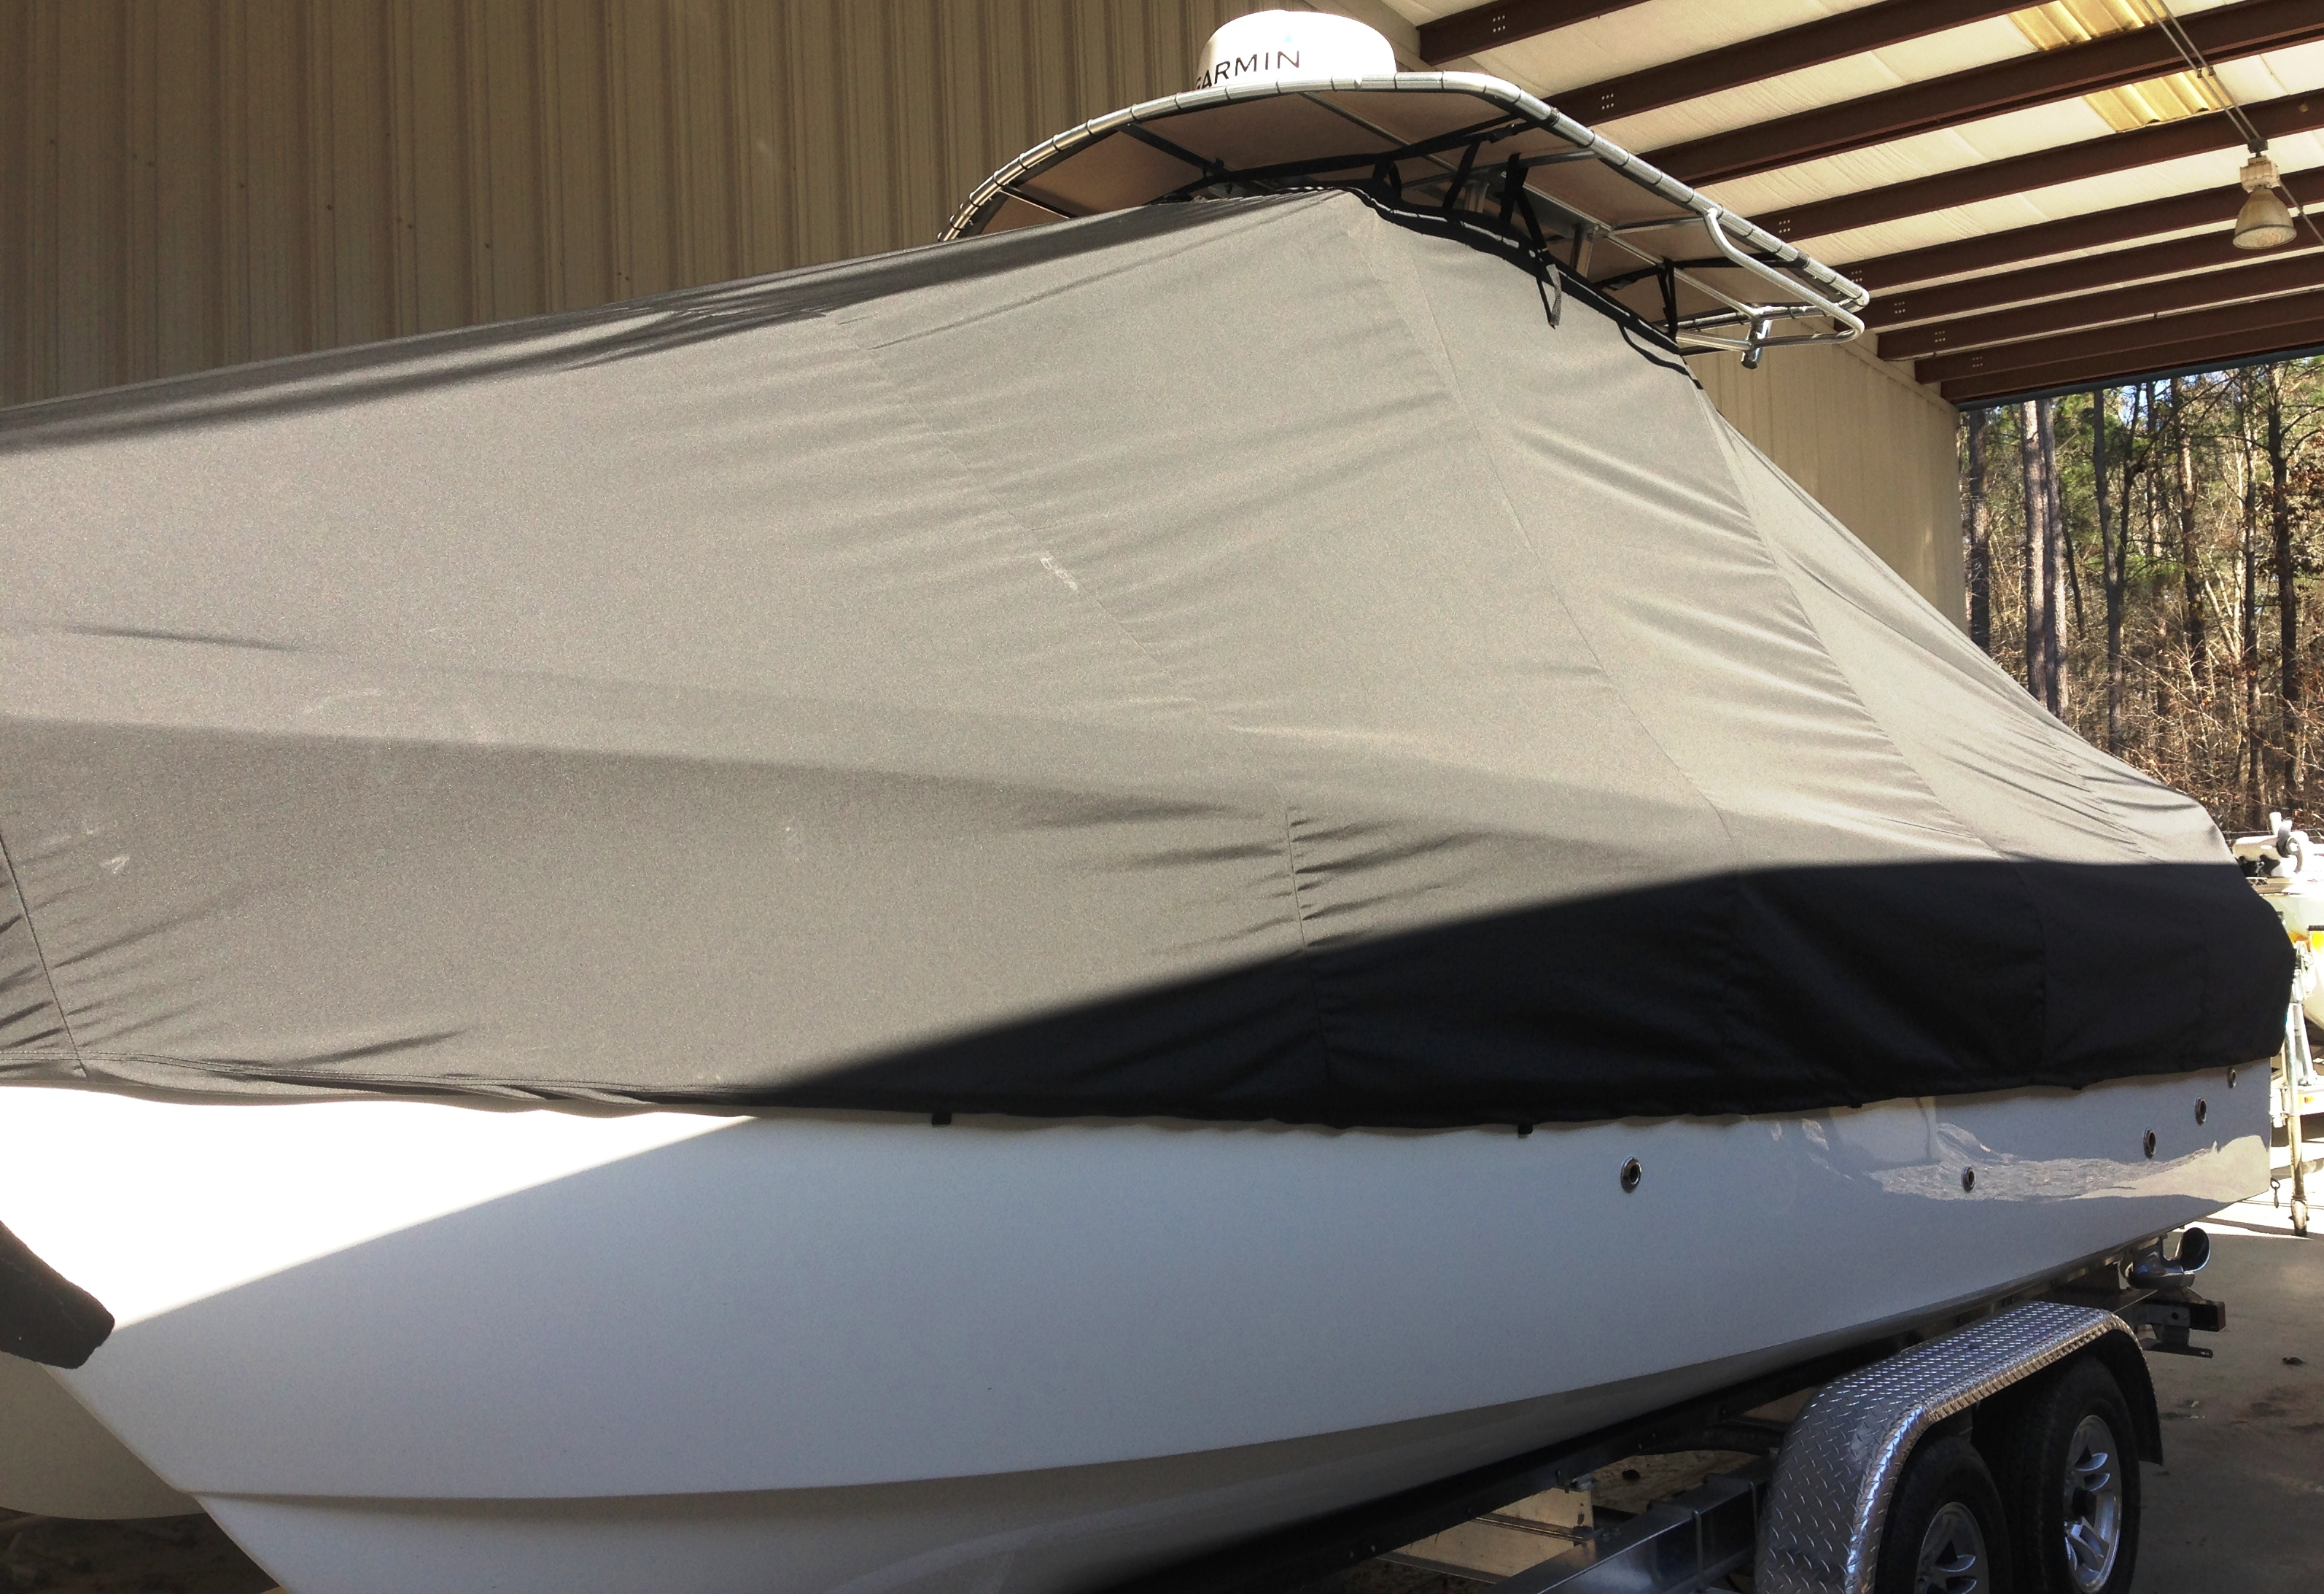 World Cat 230 CC, 20xx, TTopCovers™ T-Top boat cover, port side